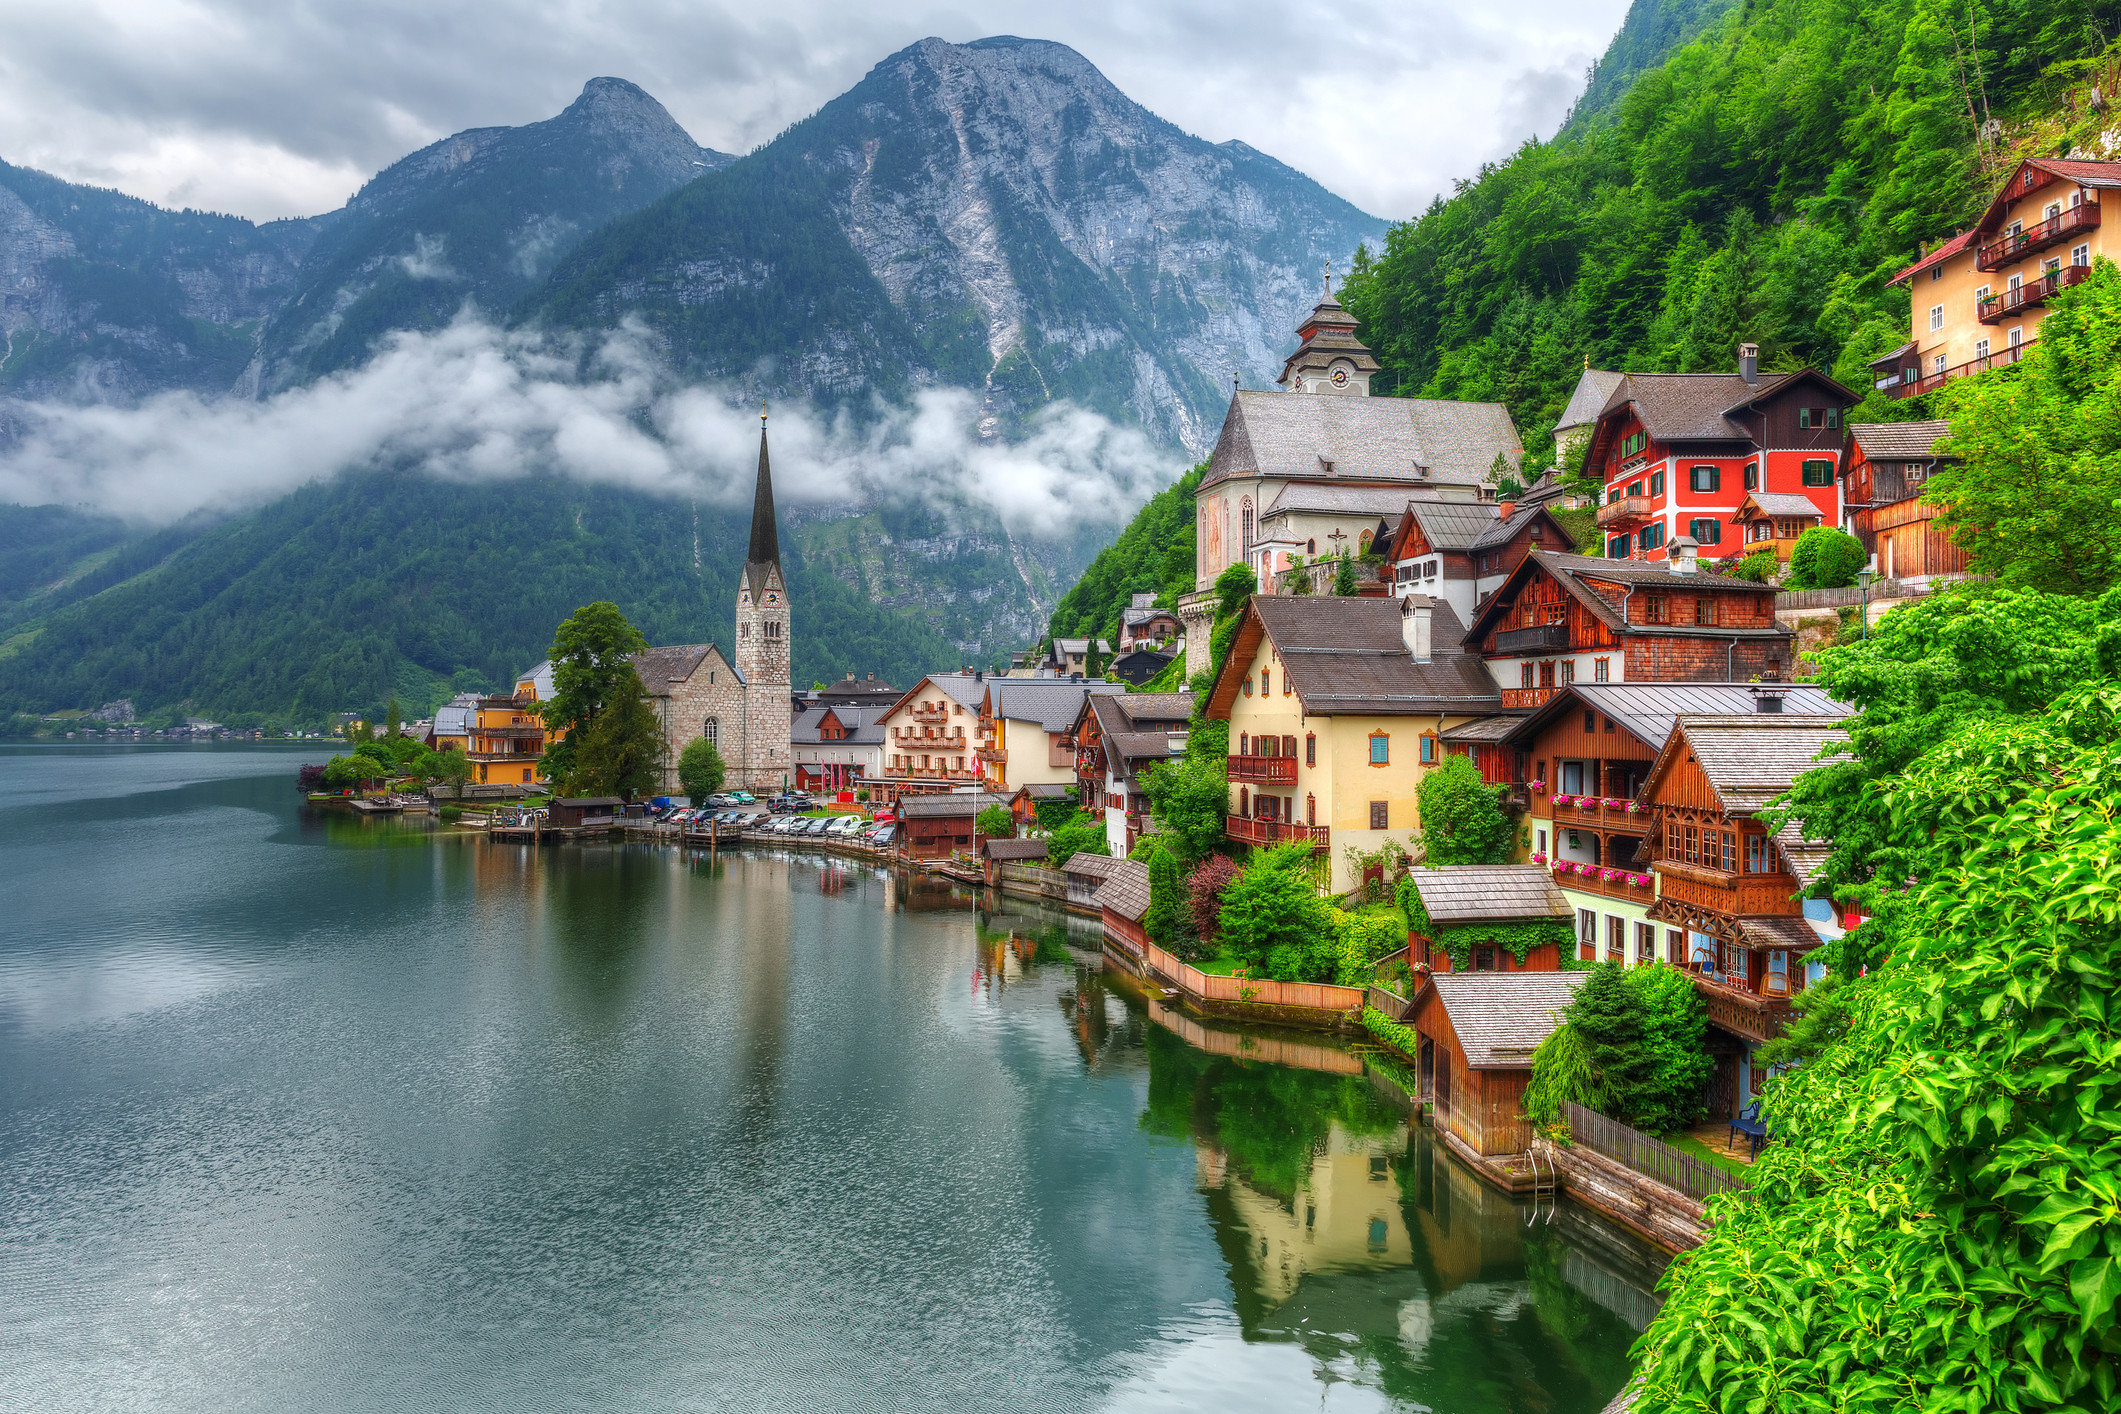 Hotels Trip Ideas mountain outdoor water mountainous landforms Nature geographical feature Town mountain range River Village vacation tourism alps fjord landscape Lake valley flower traveling surrounded